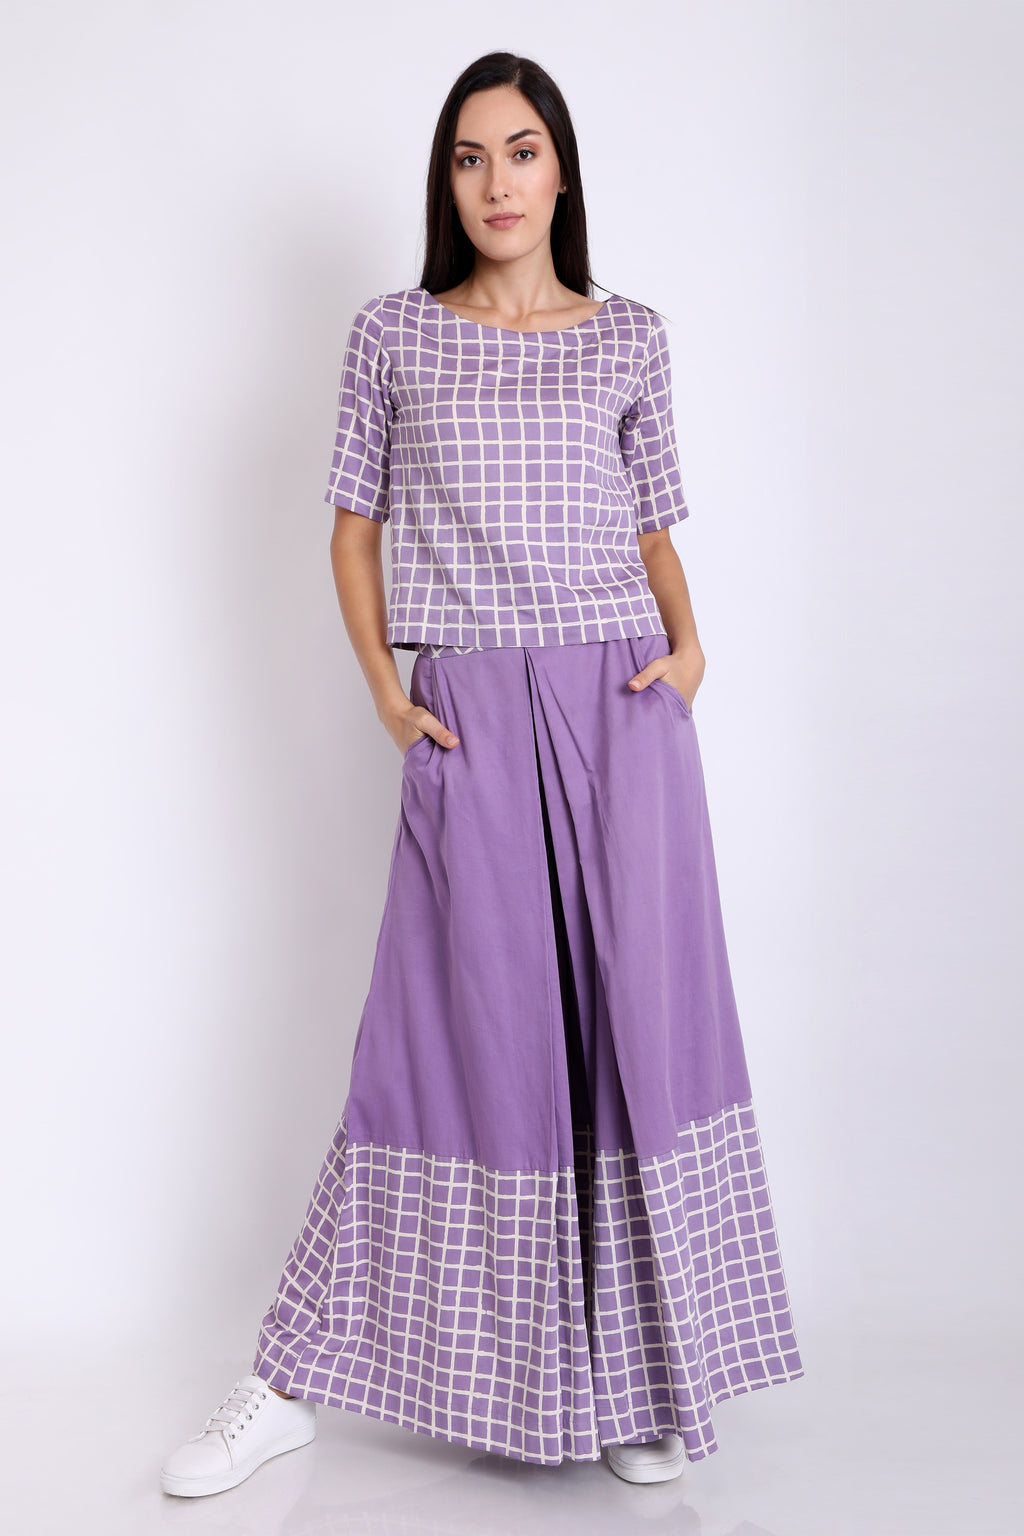 3X9T WOMENS COTTON SATIN CHECK PANEL WIDE LEG PANTS - URU THE STORE